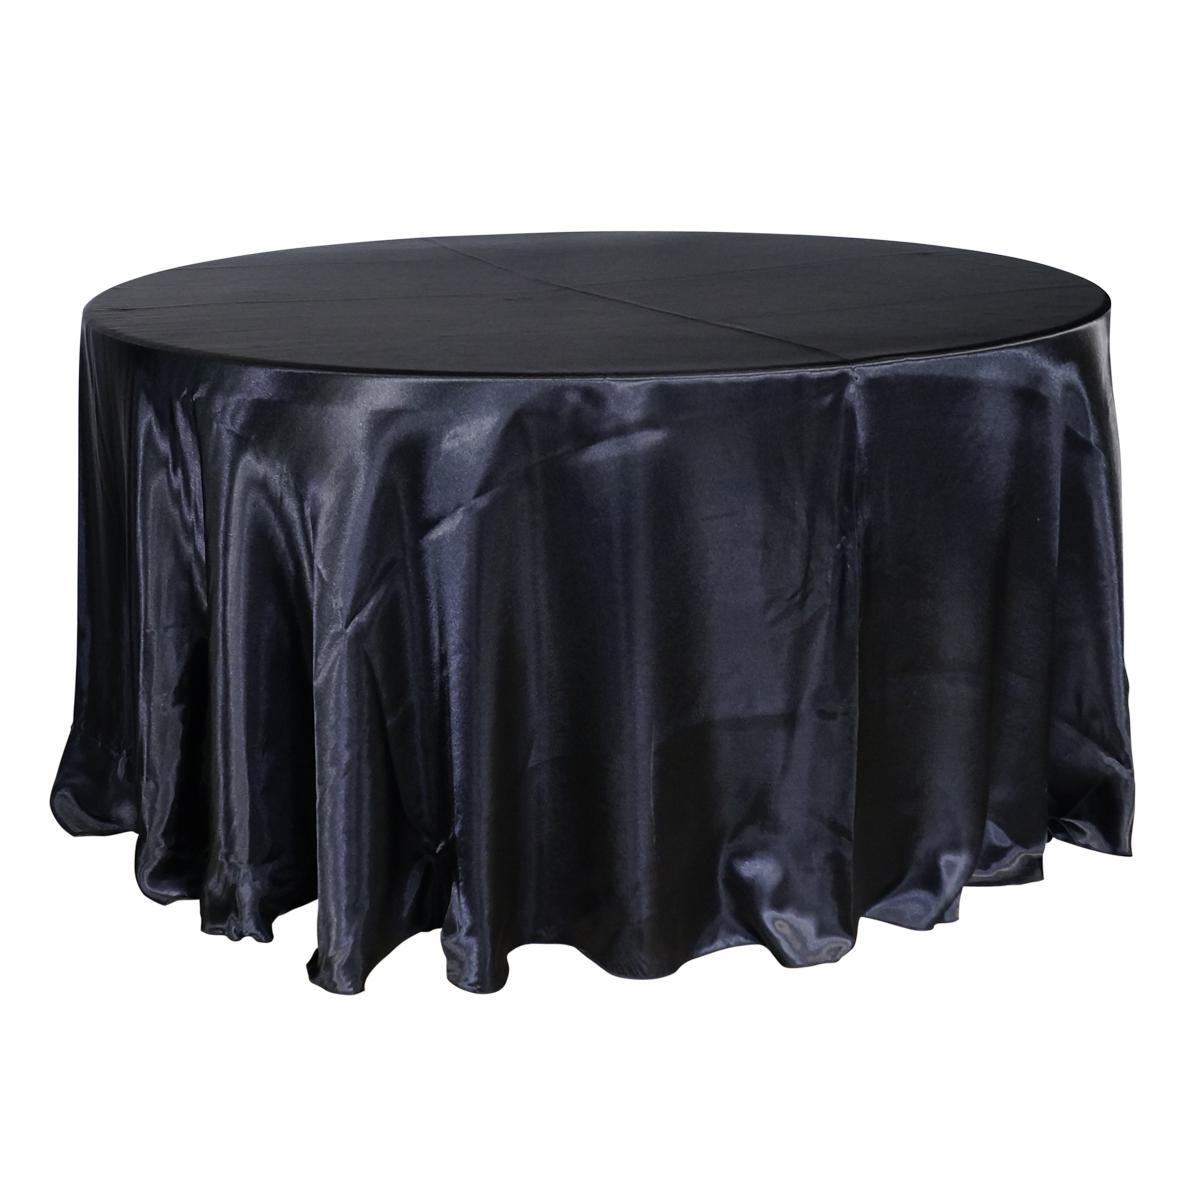 "Economy Shiny Satin 132"" Round Tablecloth - Black"